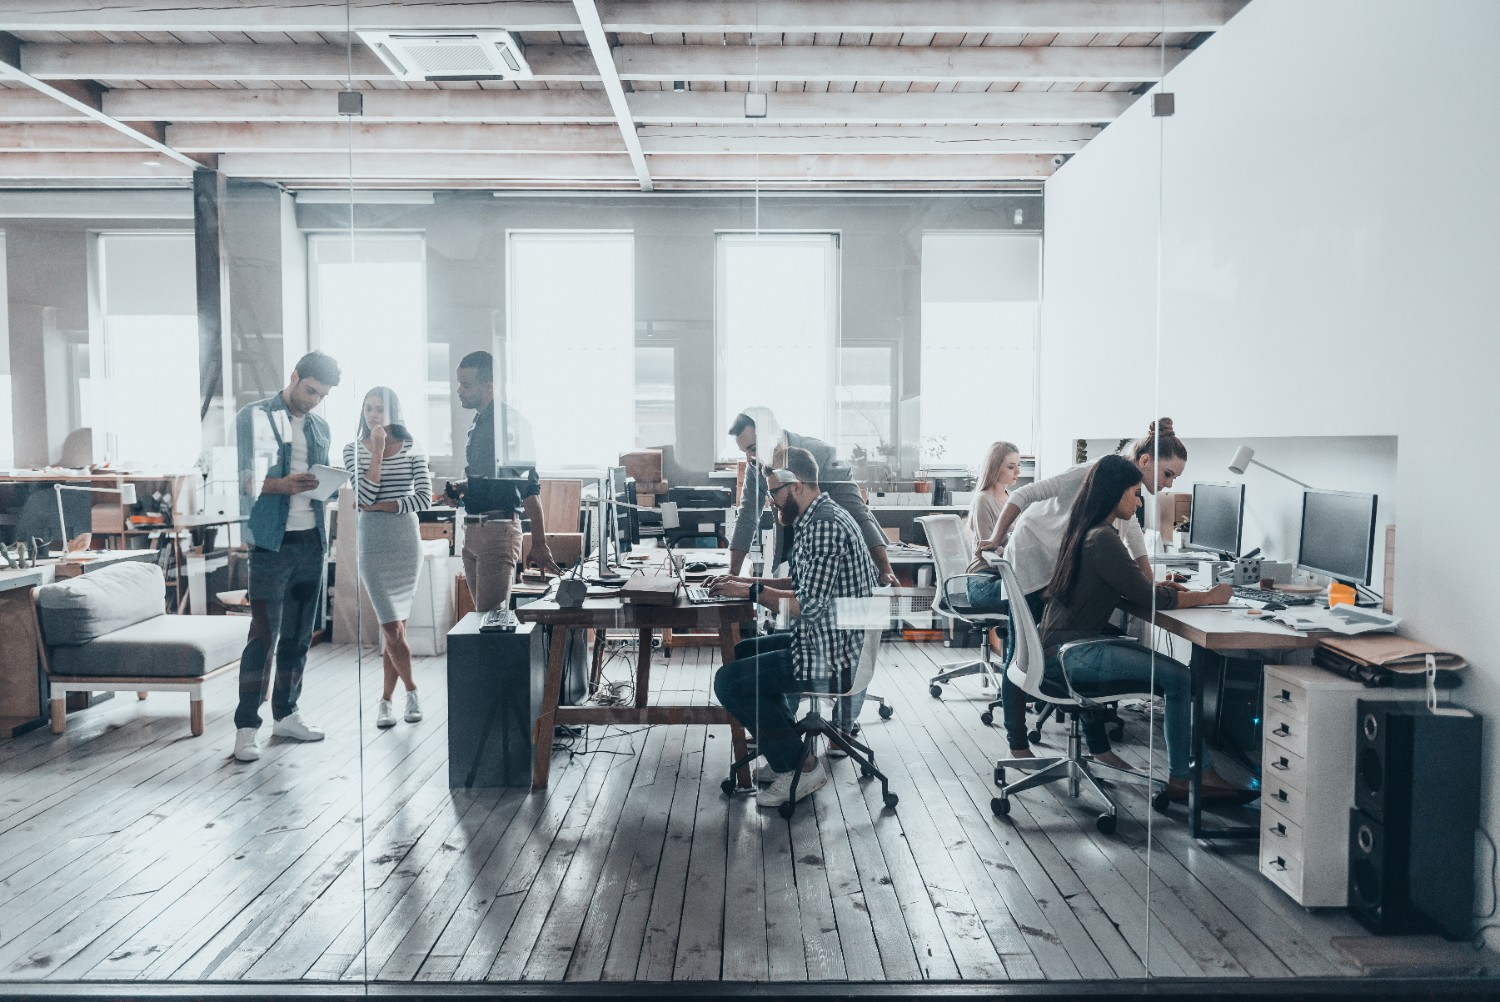 employees working in an office monitored by CCTV camera